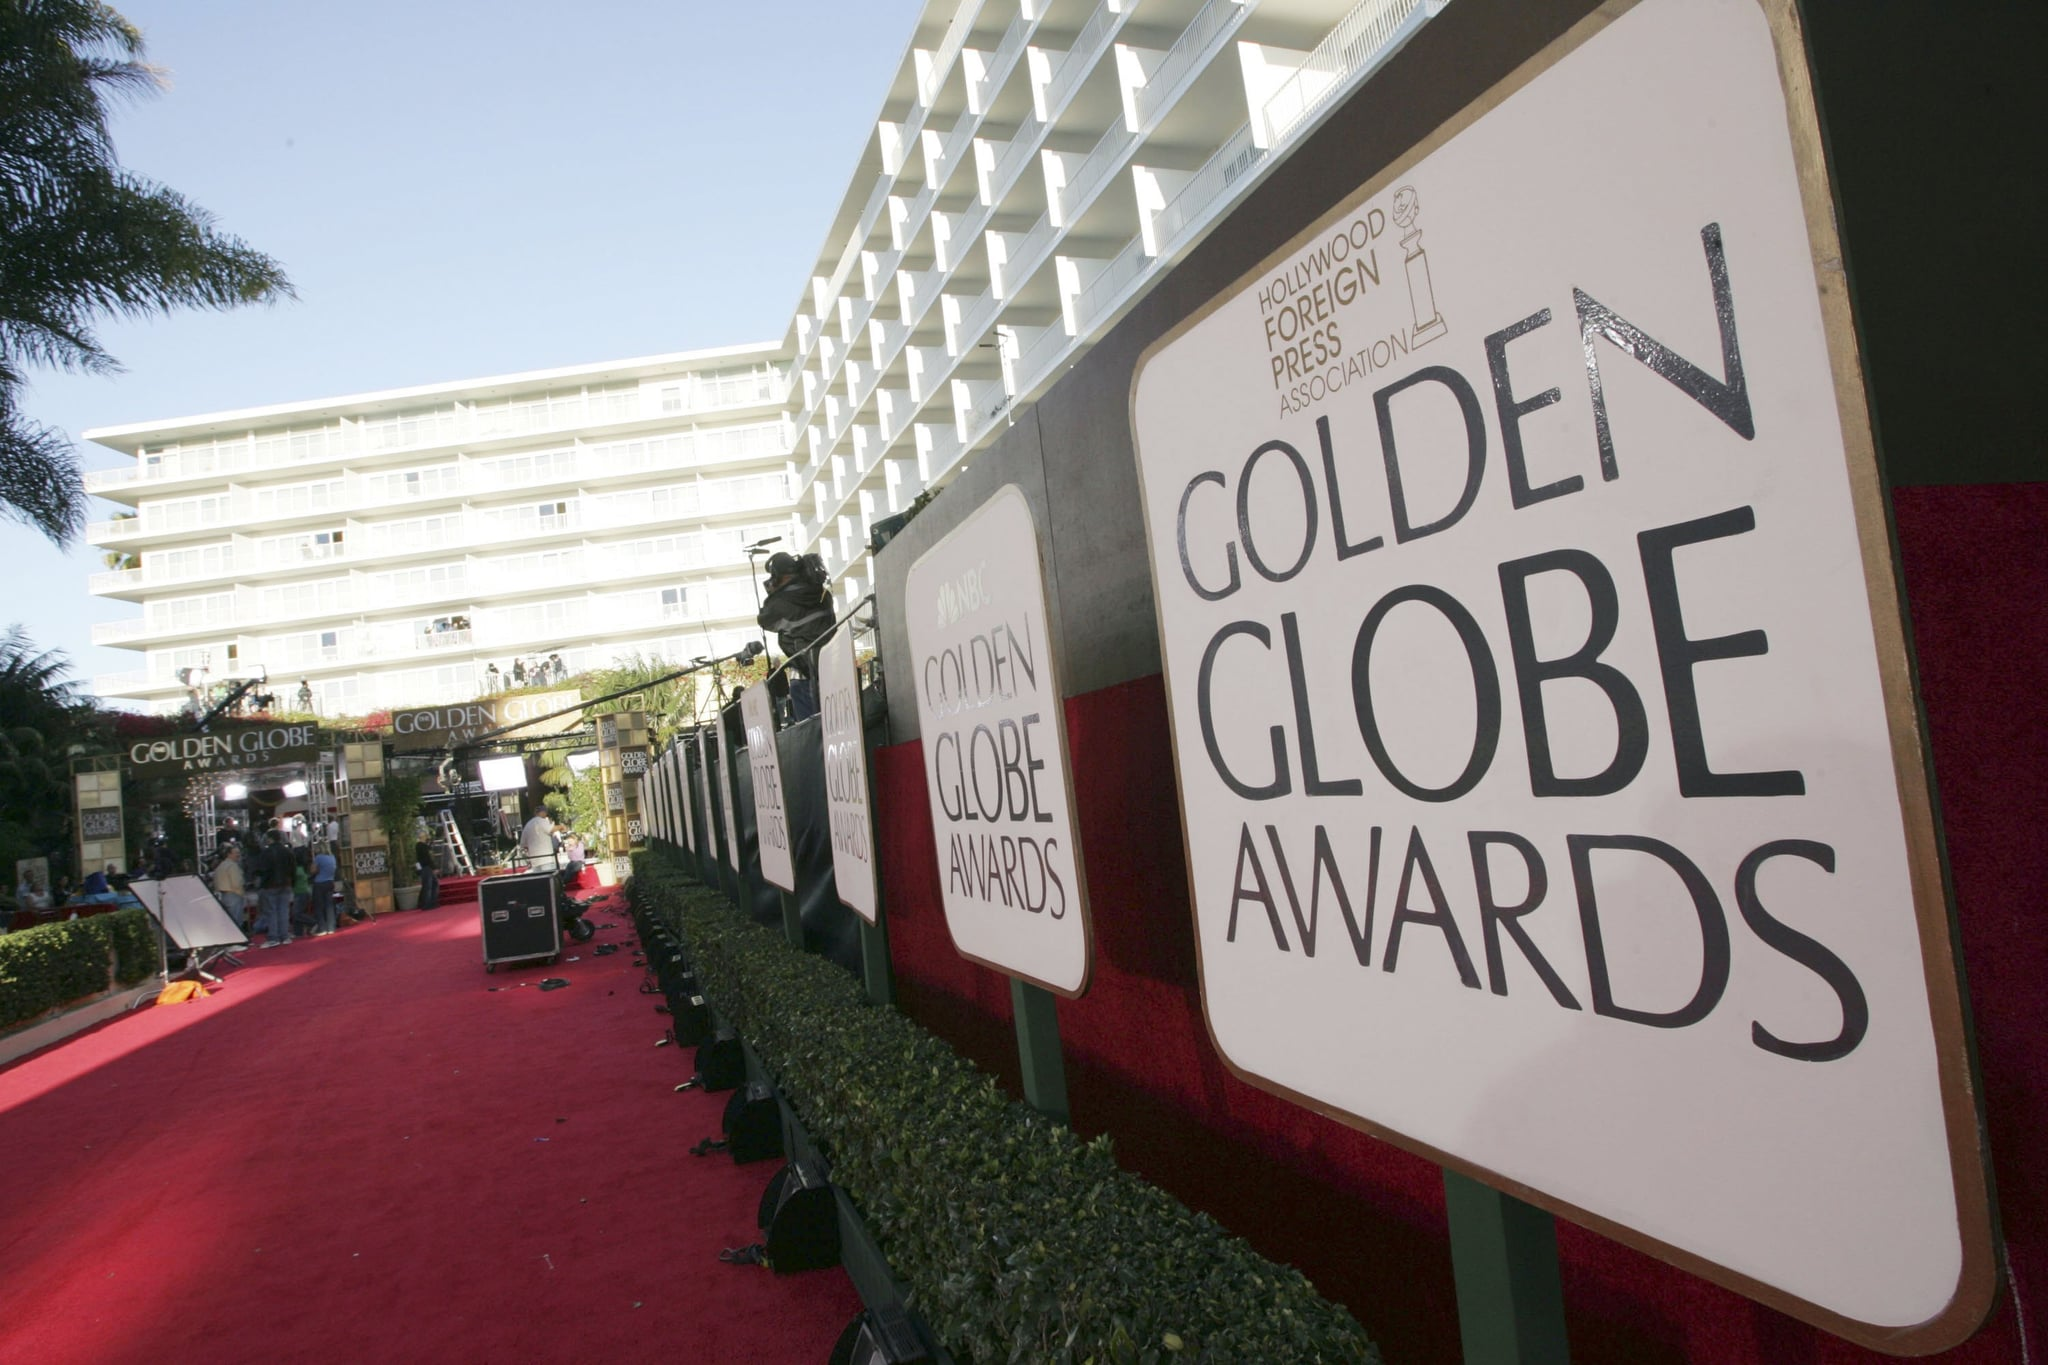 BEVERLY HILLS, CA - JANUARY 15:  Preparations for the 63rd Annual Golden Globes are underway at the Beverly Hilton Hotel on January 15, 2006 in Beverly Hills, California.  (Photo by Kevin Winter/Getty Images)